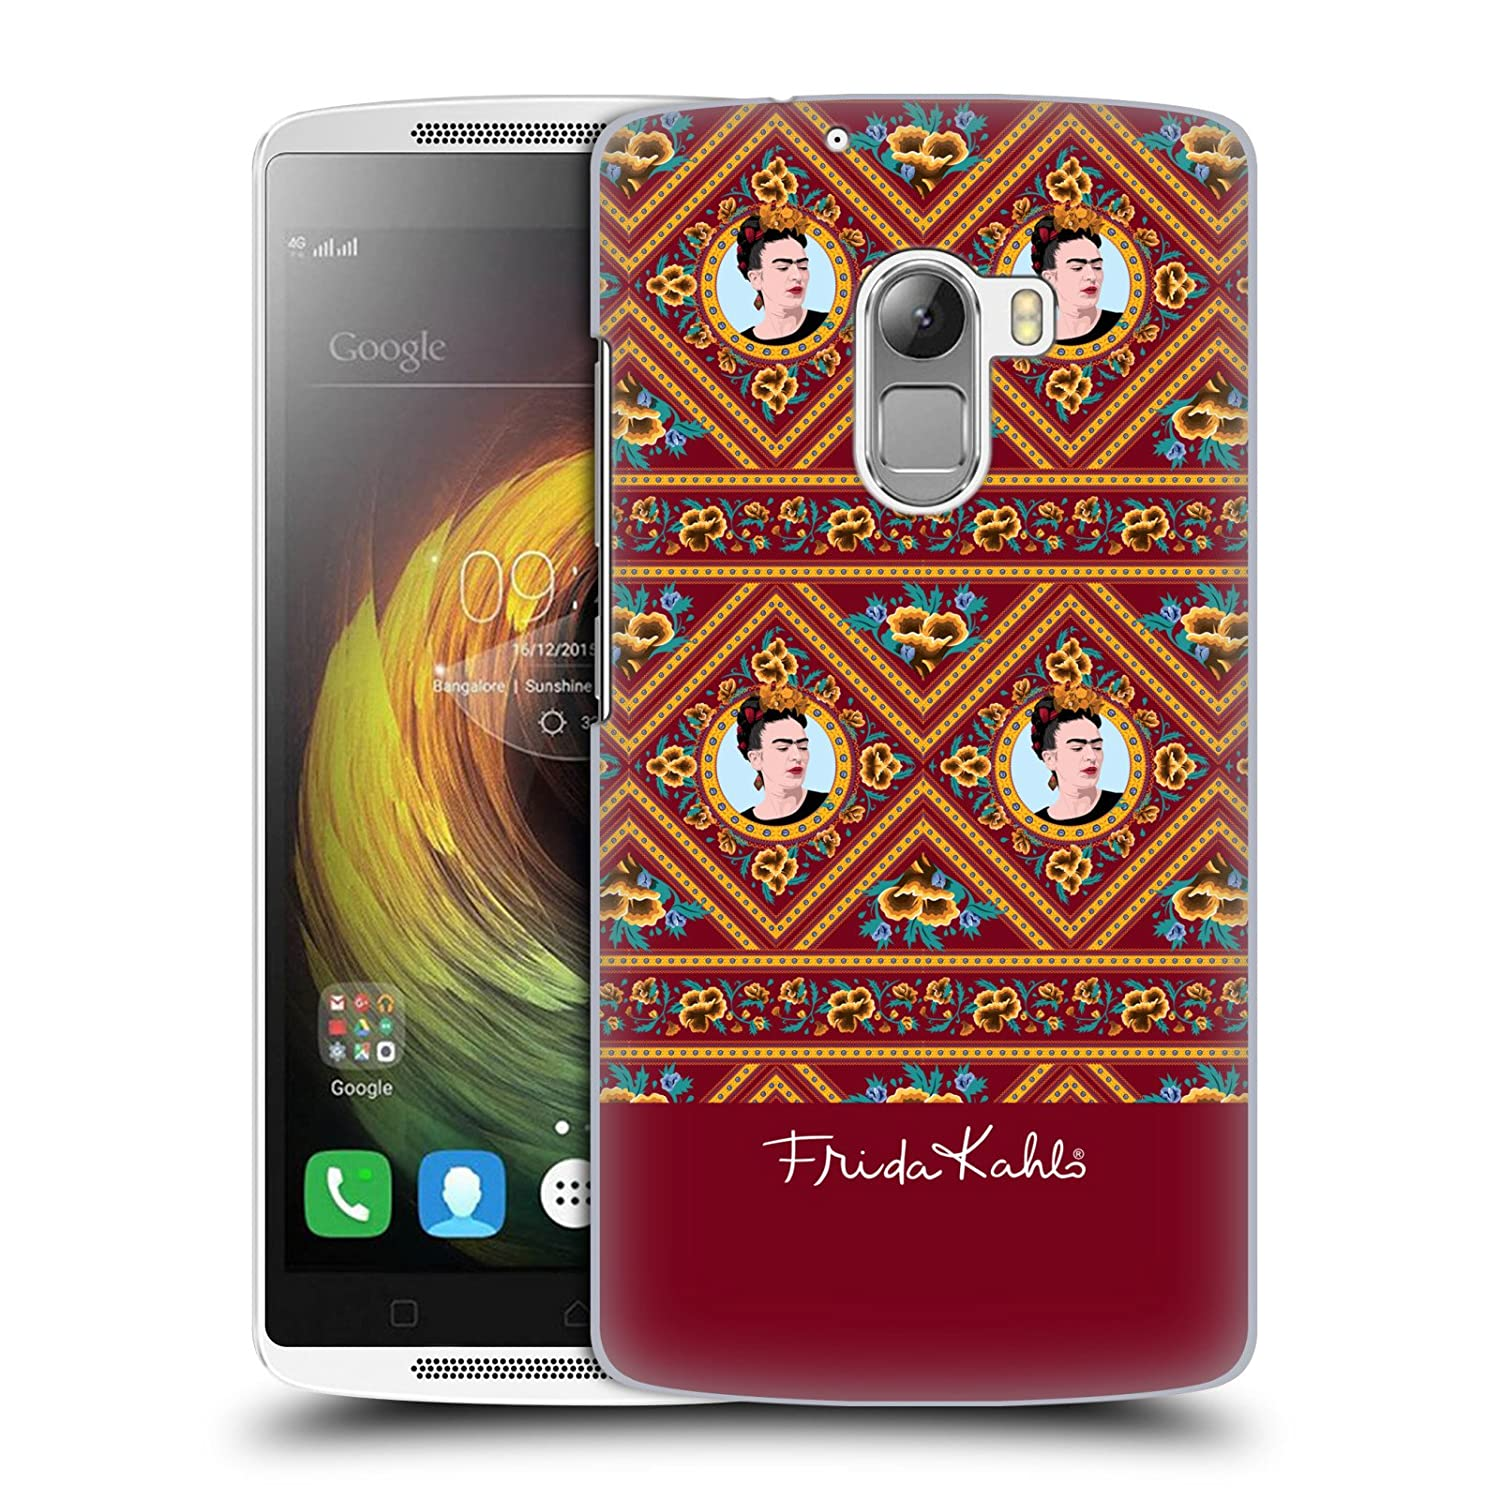 Amazon ficial Frida Kahlo Maroon Portraits And Patterns Hard Back Case for Lenovo Vibe K4 Note Cell Phones & Accessories